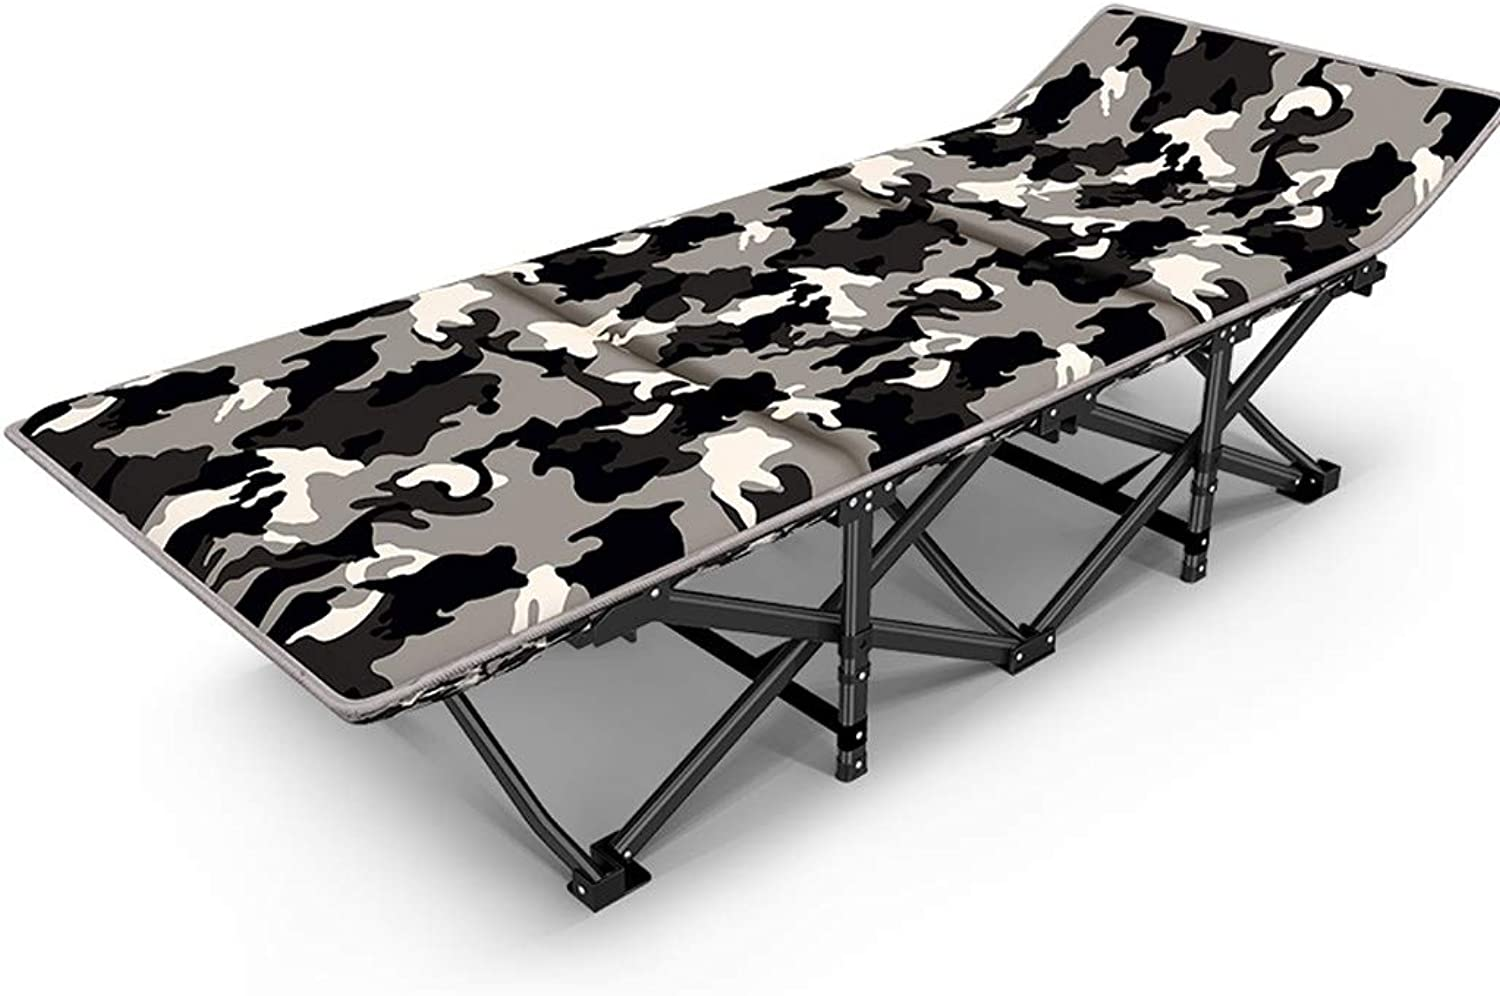 Reinforced Folding Bed Siesta Bed Office Lunch Bed Single Bed Invisible Bed Accompanying Bed Simple Bed Home Reinforced Flat Tube (color   Plus pad)